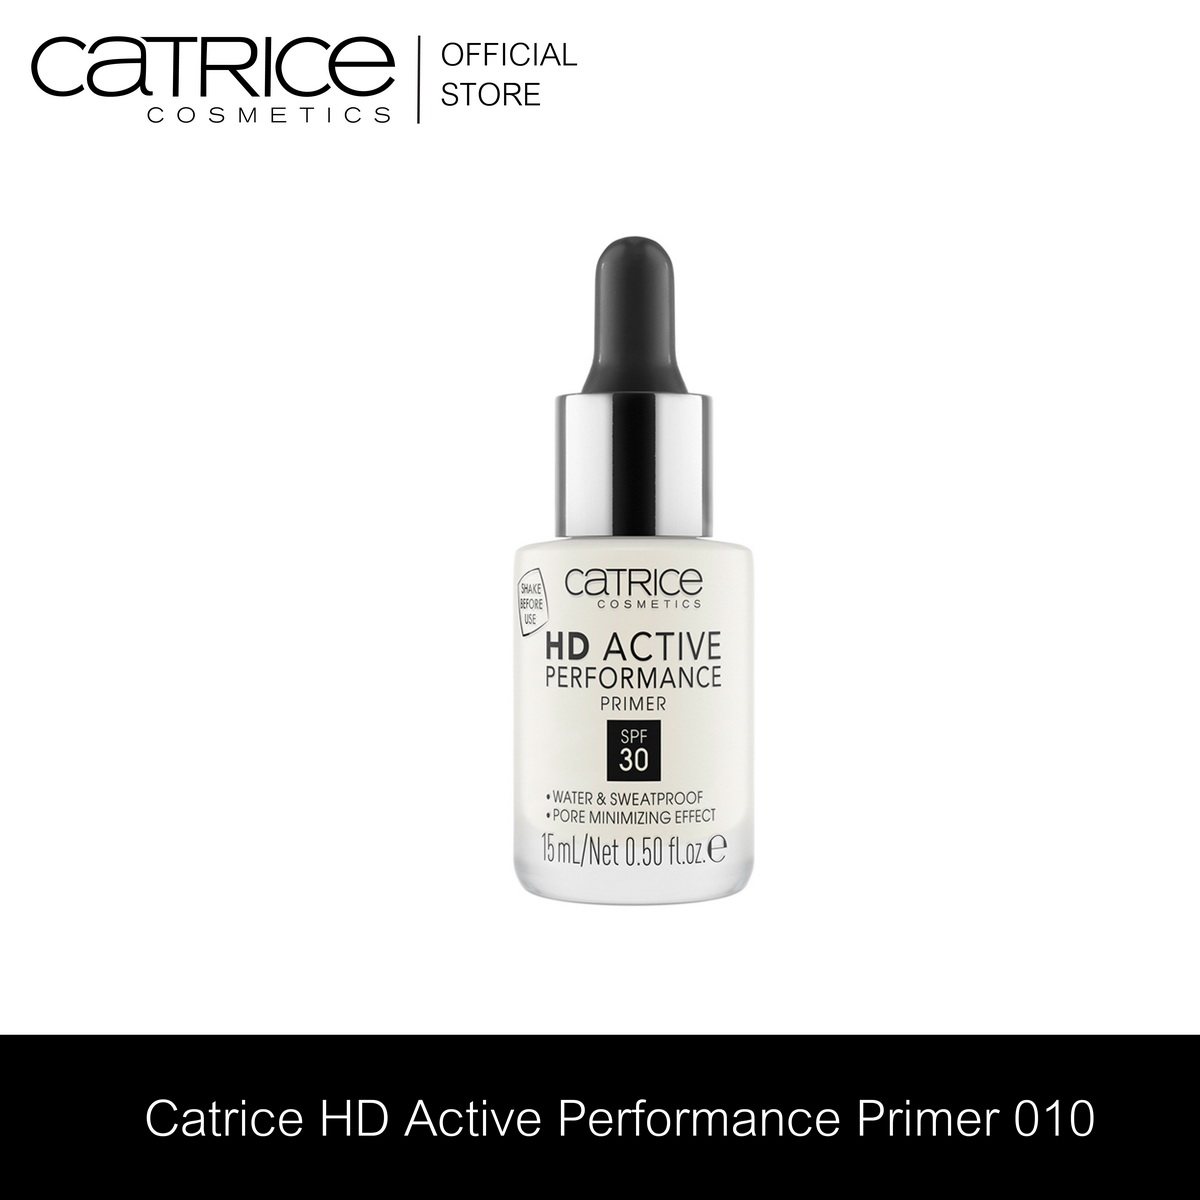 Catrice HD Active Performance Primer 010